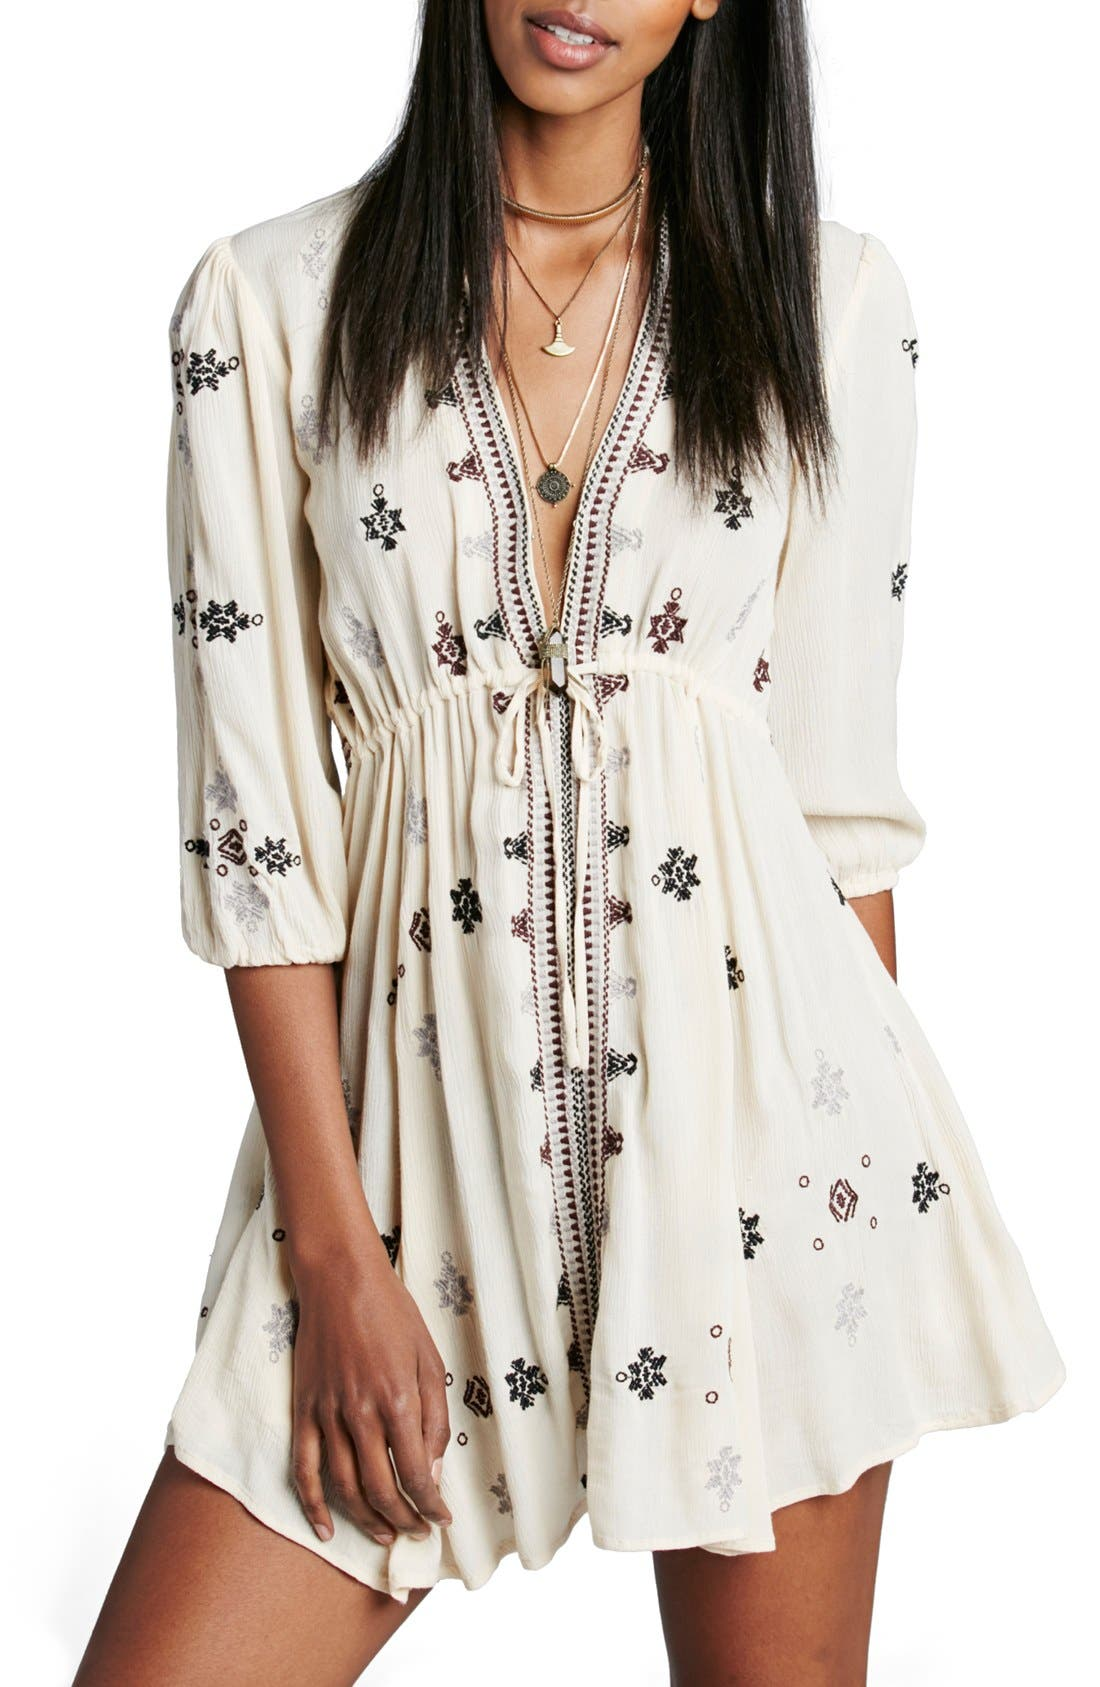 Main Image - Free People 'Star Gazer' Embroidered Tunic Dress